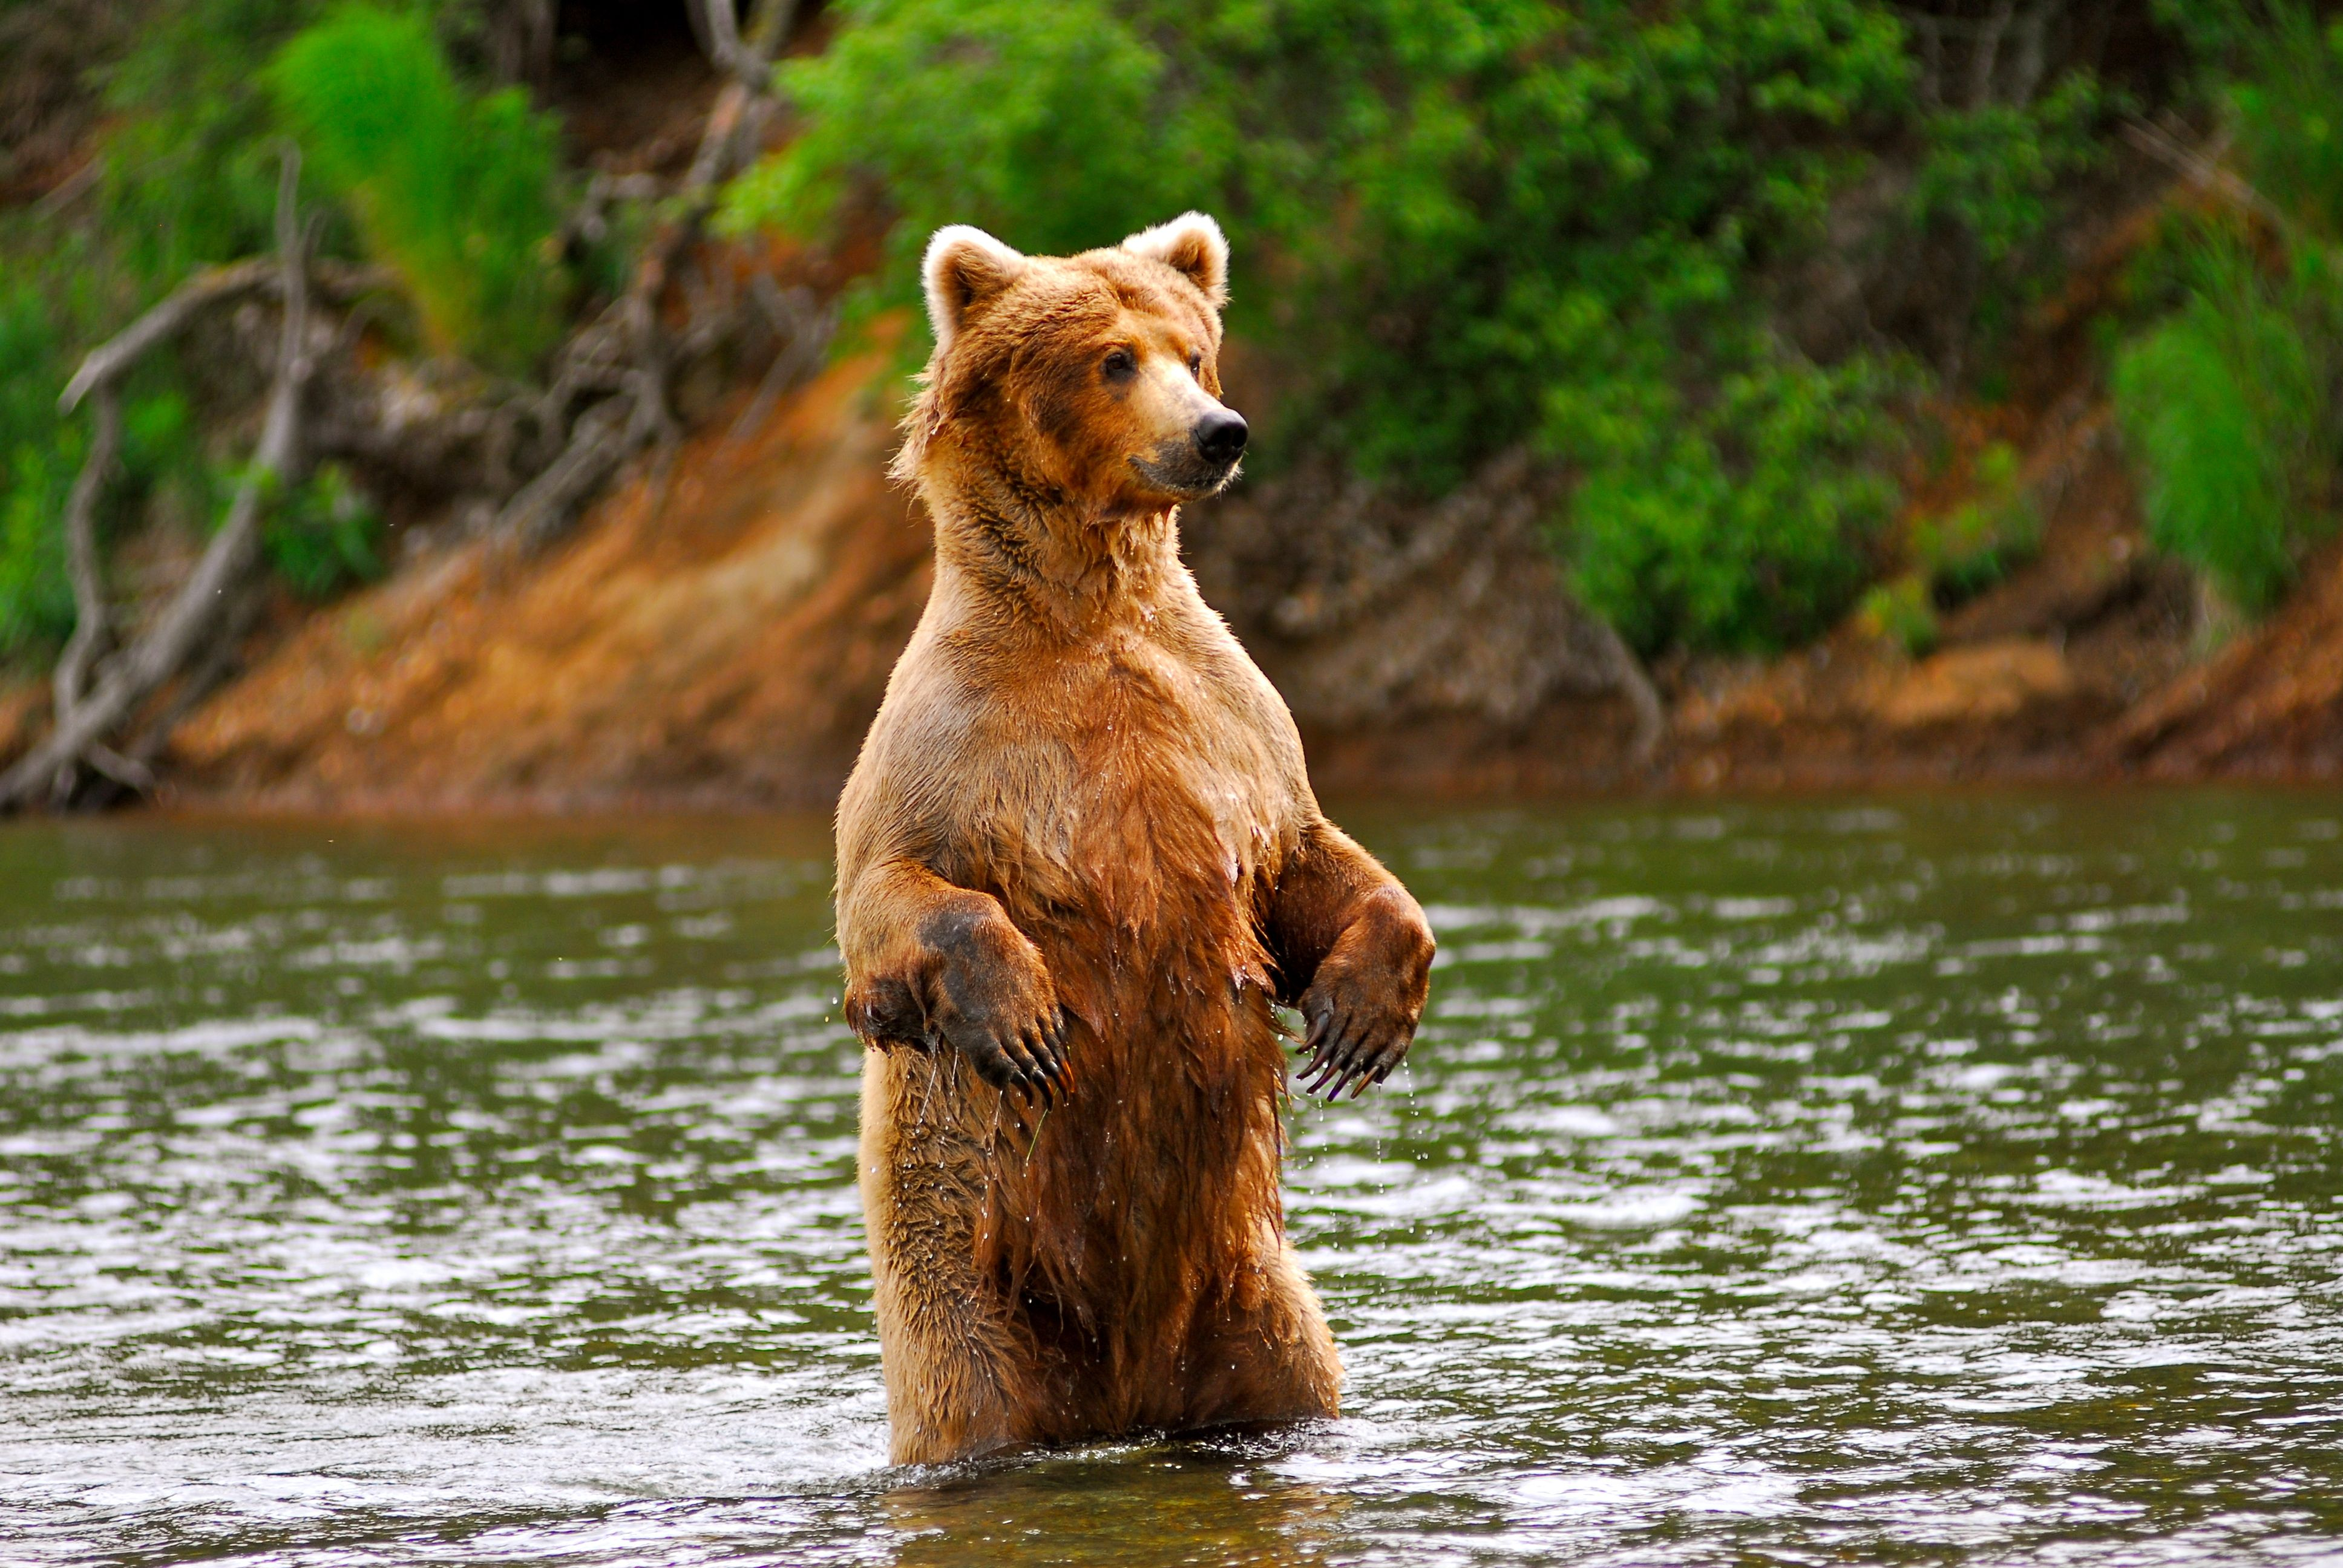 Fly fishing in Alaska with Grizzly Bears I want to do